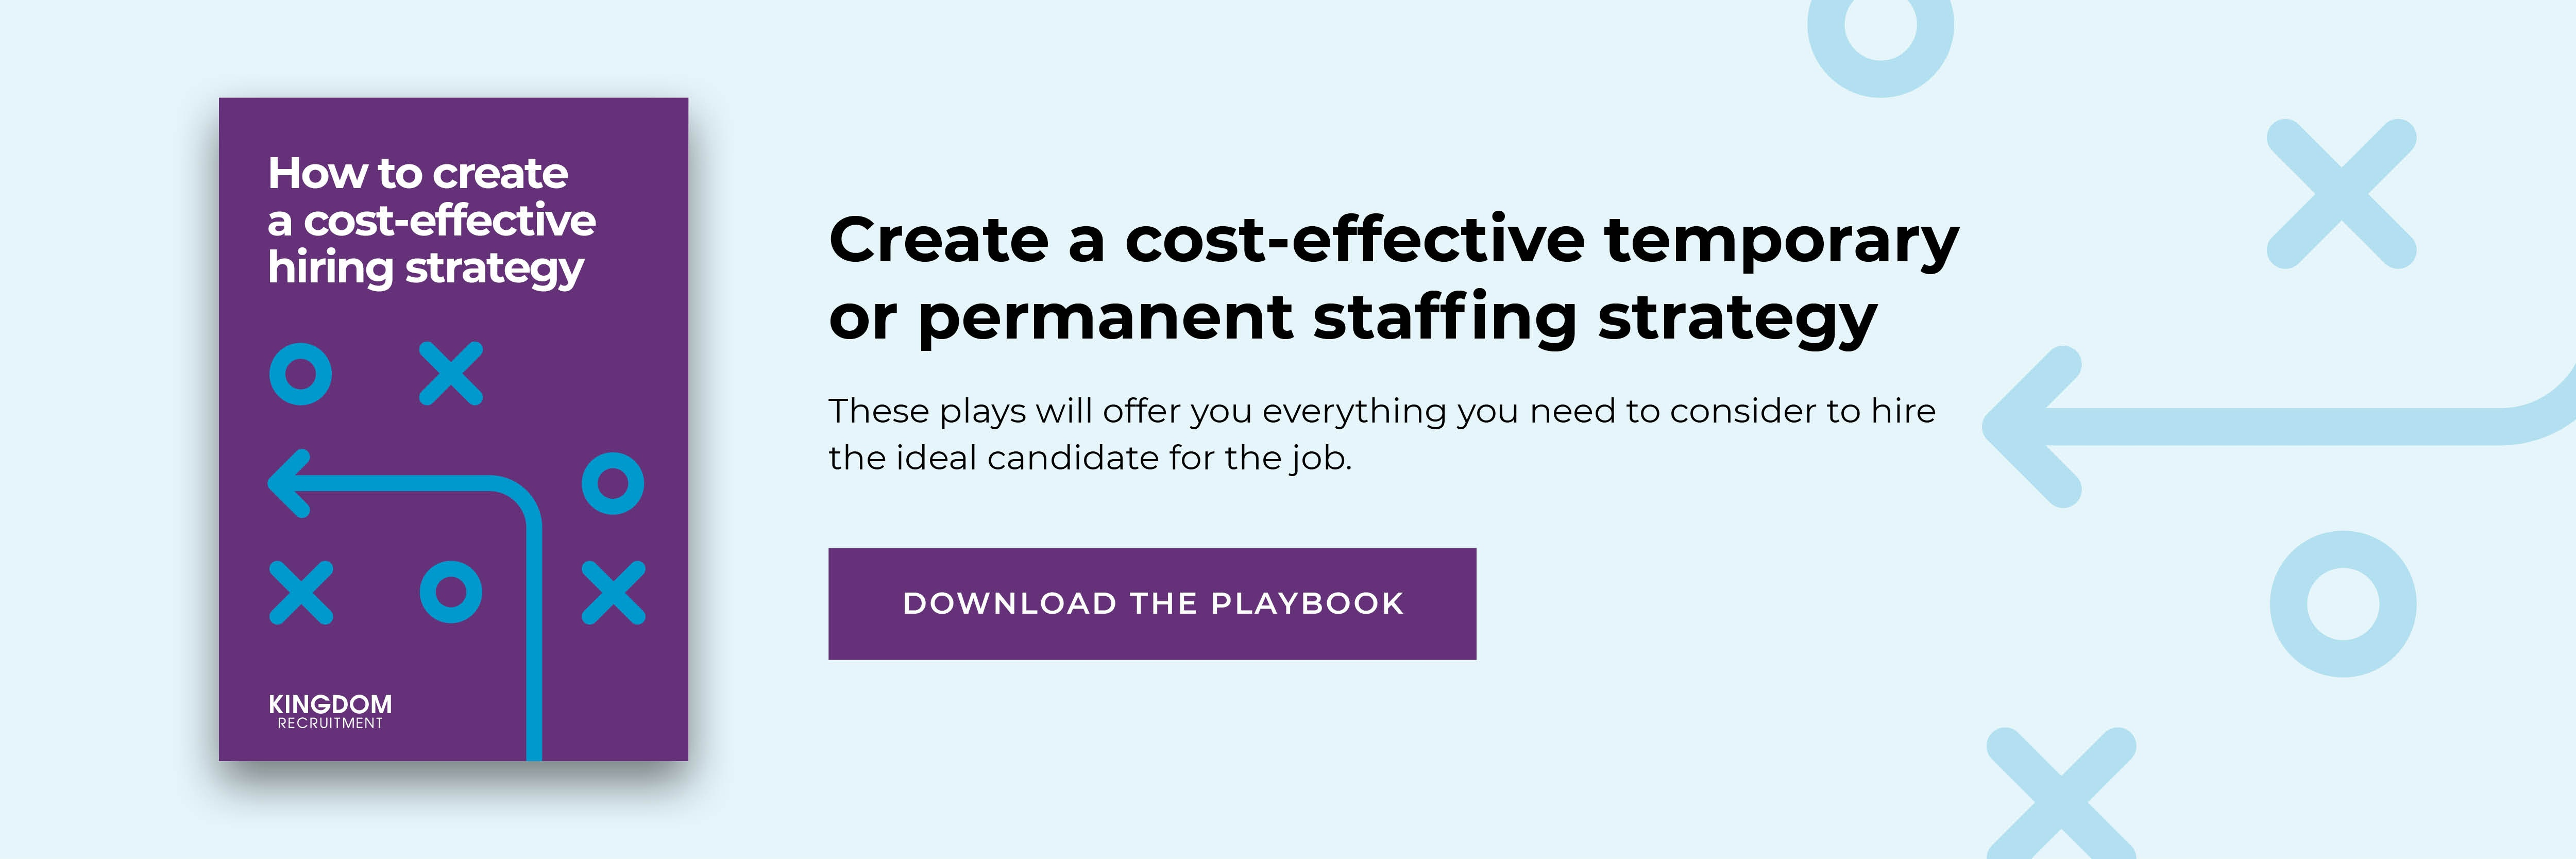 Creating a cost-effective staffing strategy